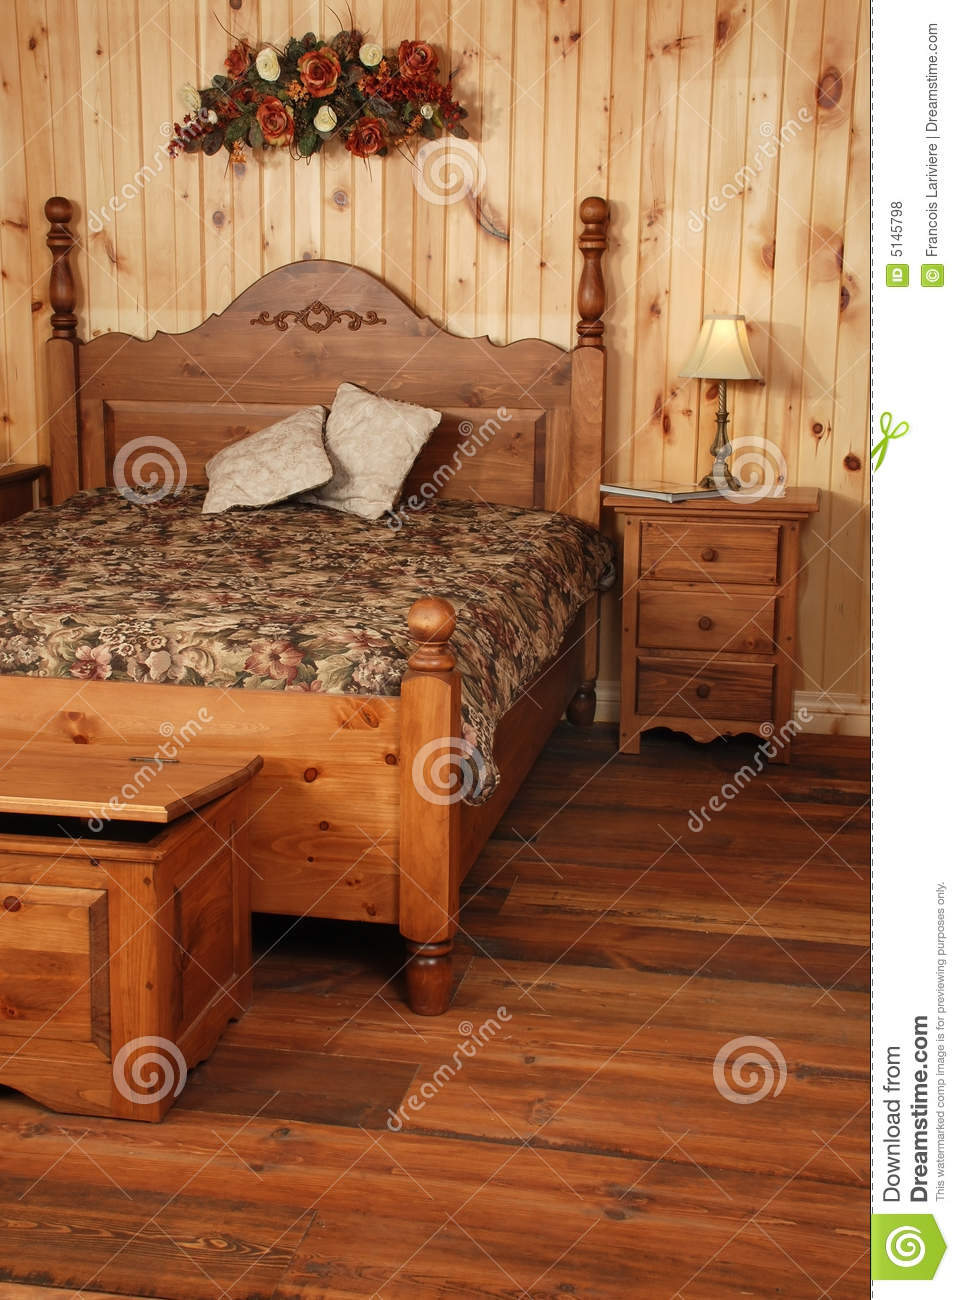 Old Pine Wood Bedroom Set Stock Photo Image Of House 5145798